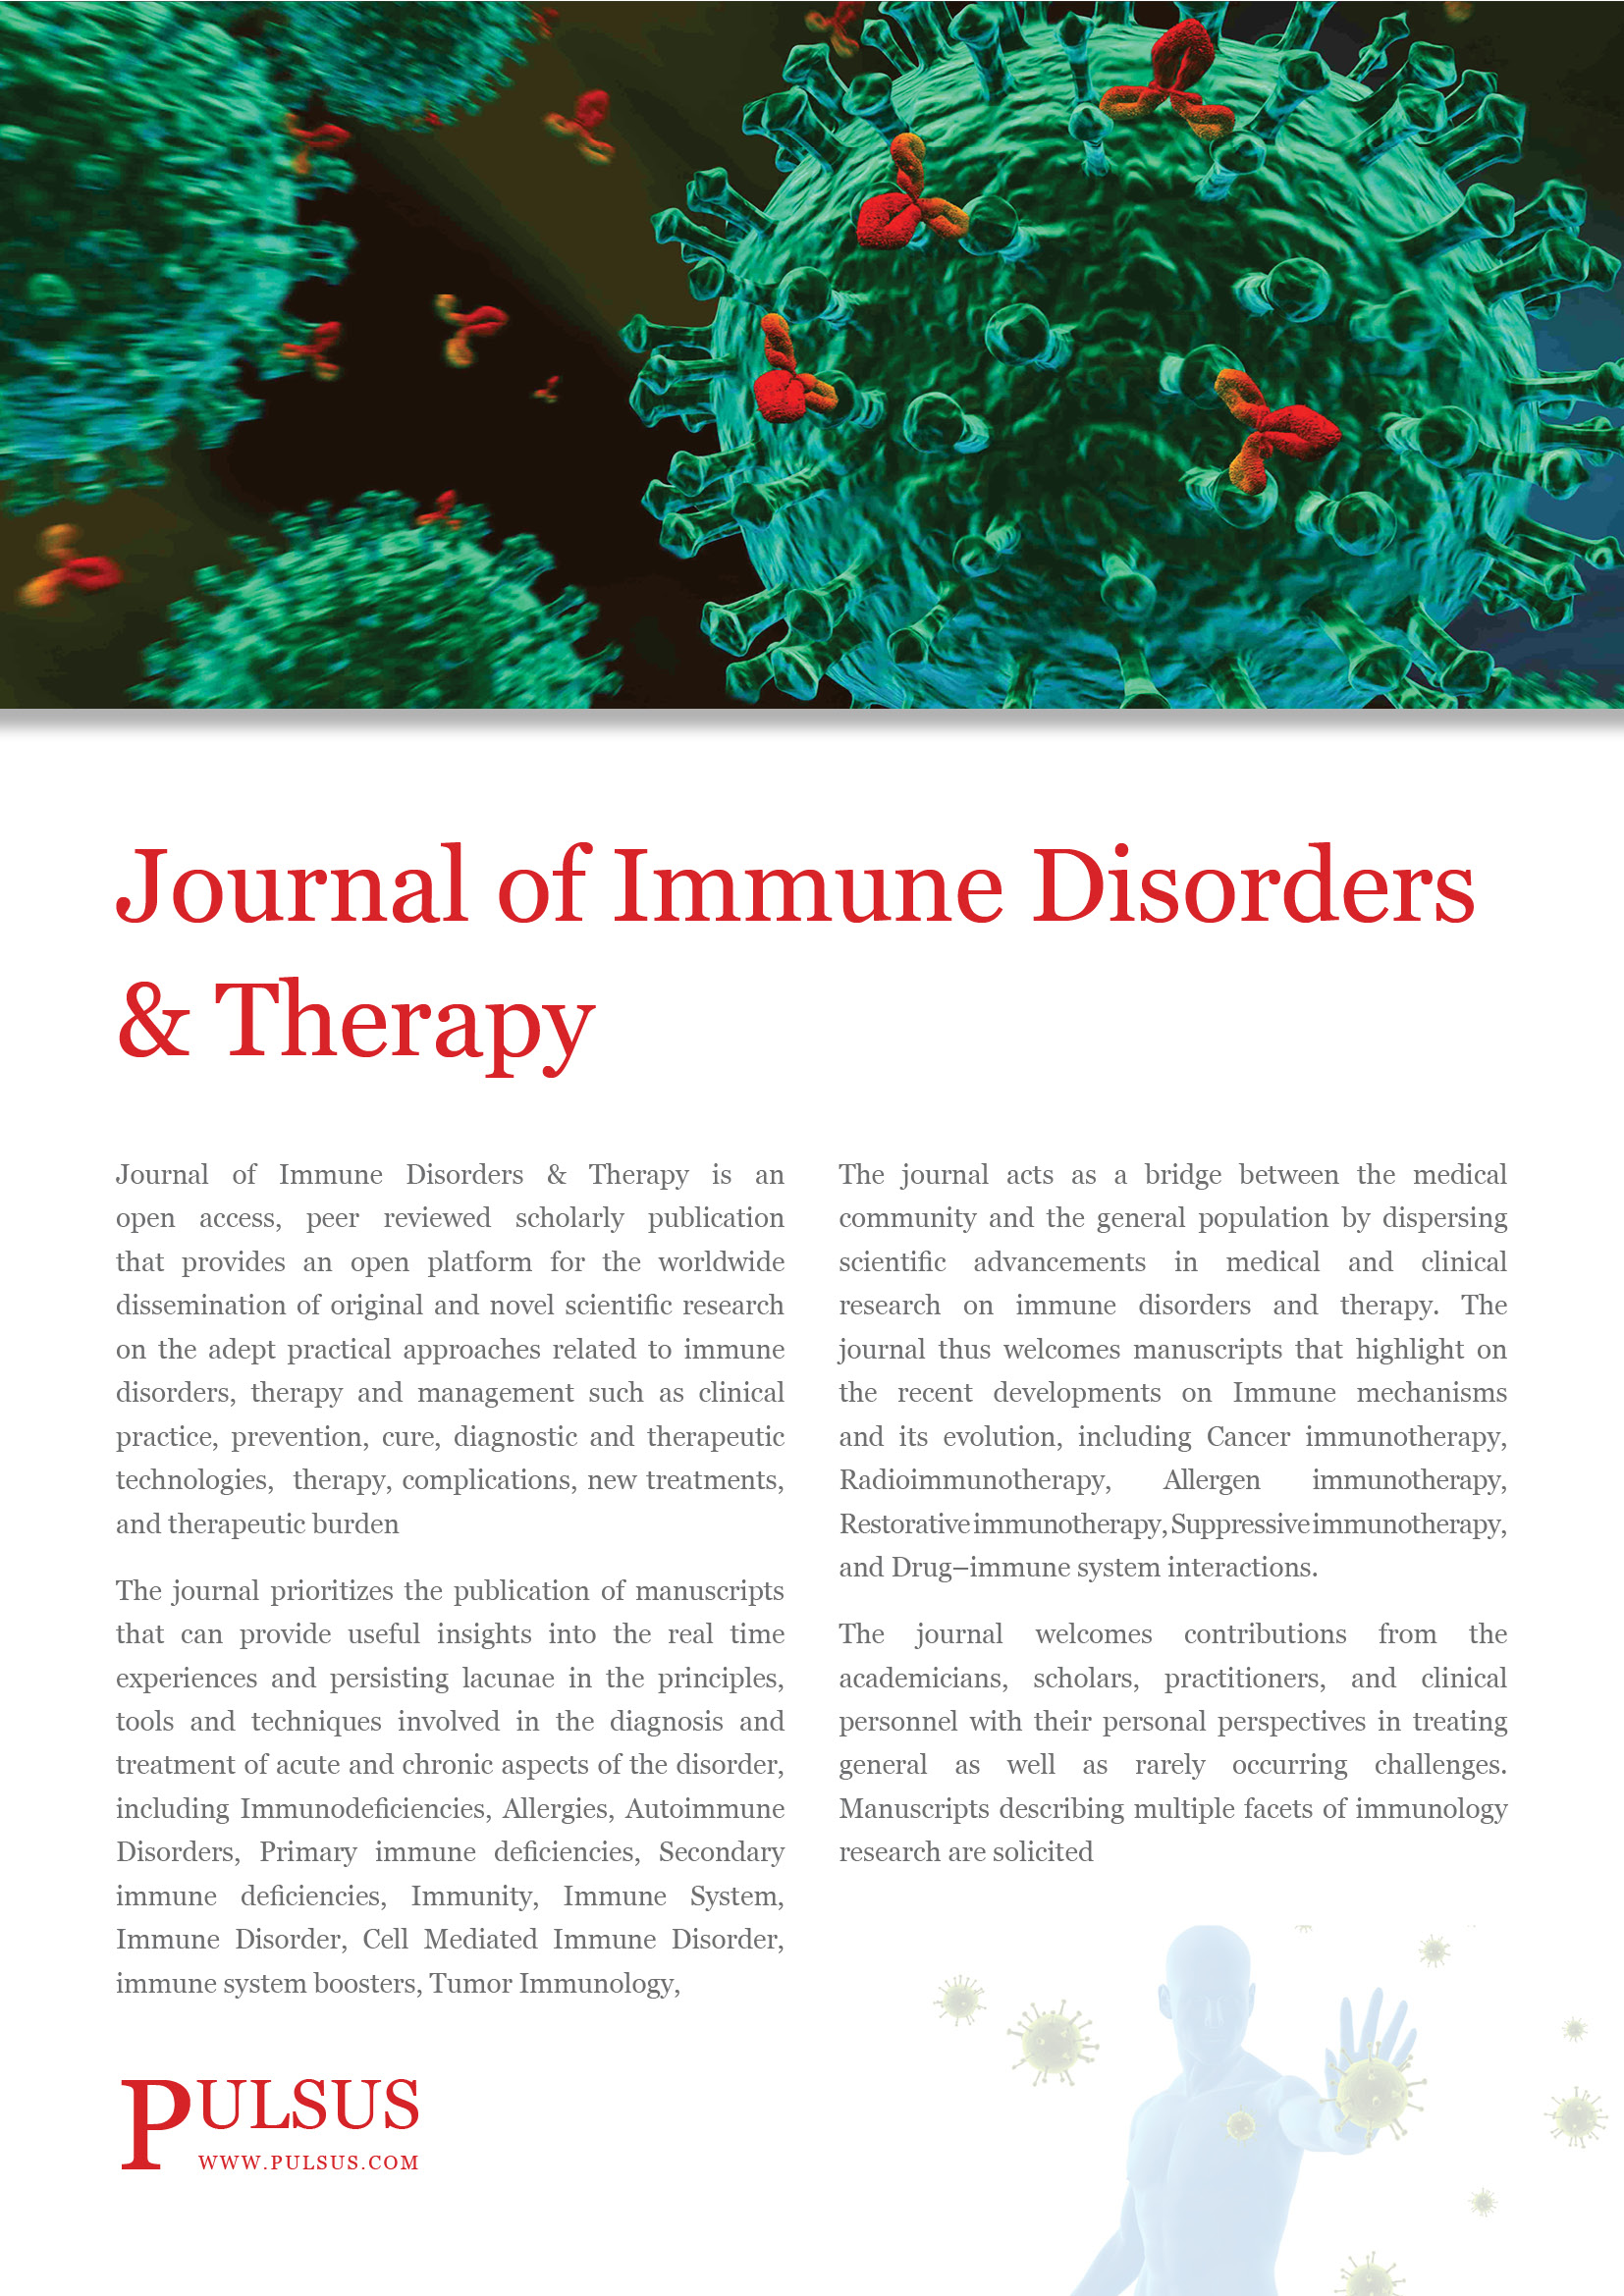 Journal of Immune Disorders & Therapy